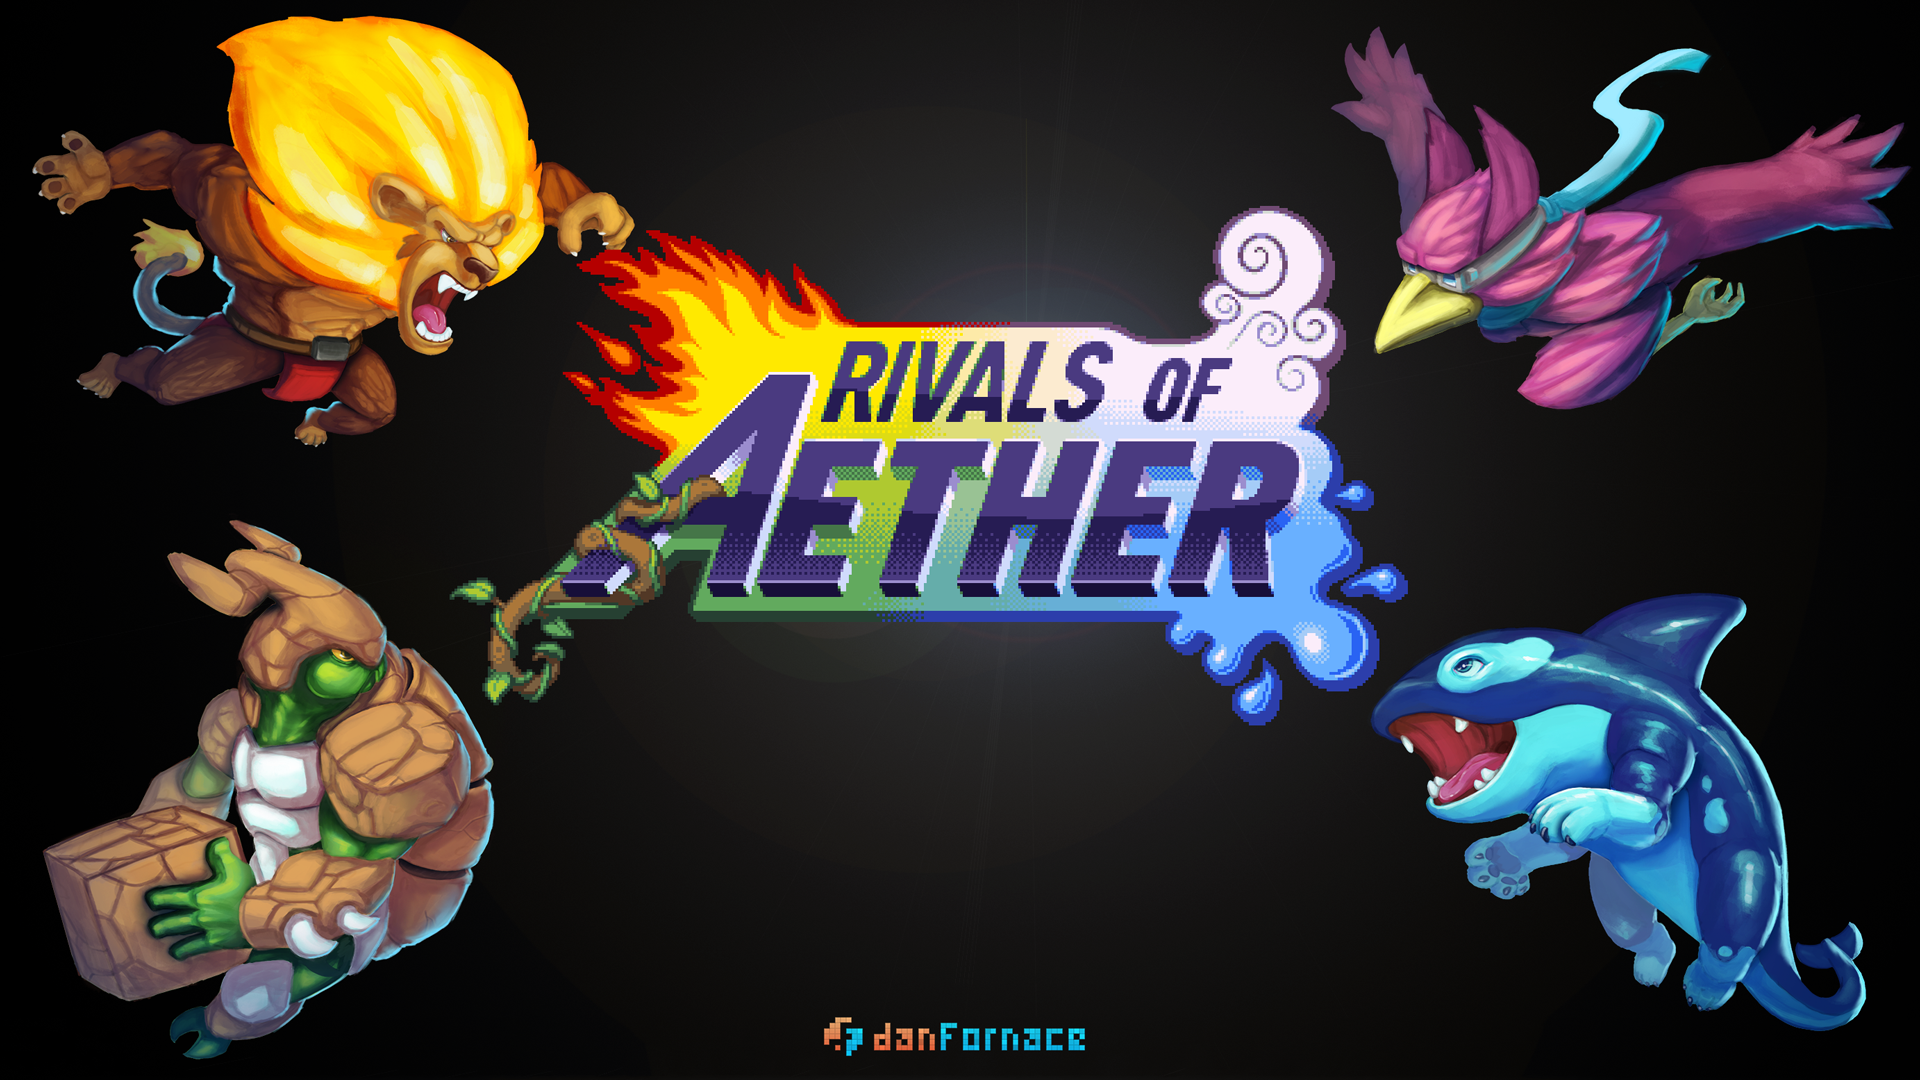 Rivals of Aether Leaves Early Access On March 28th